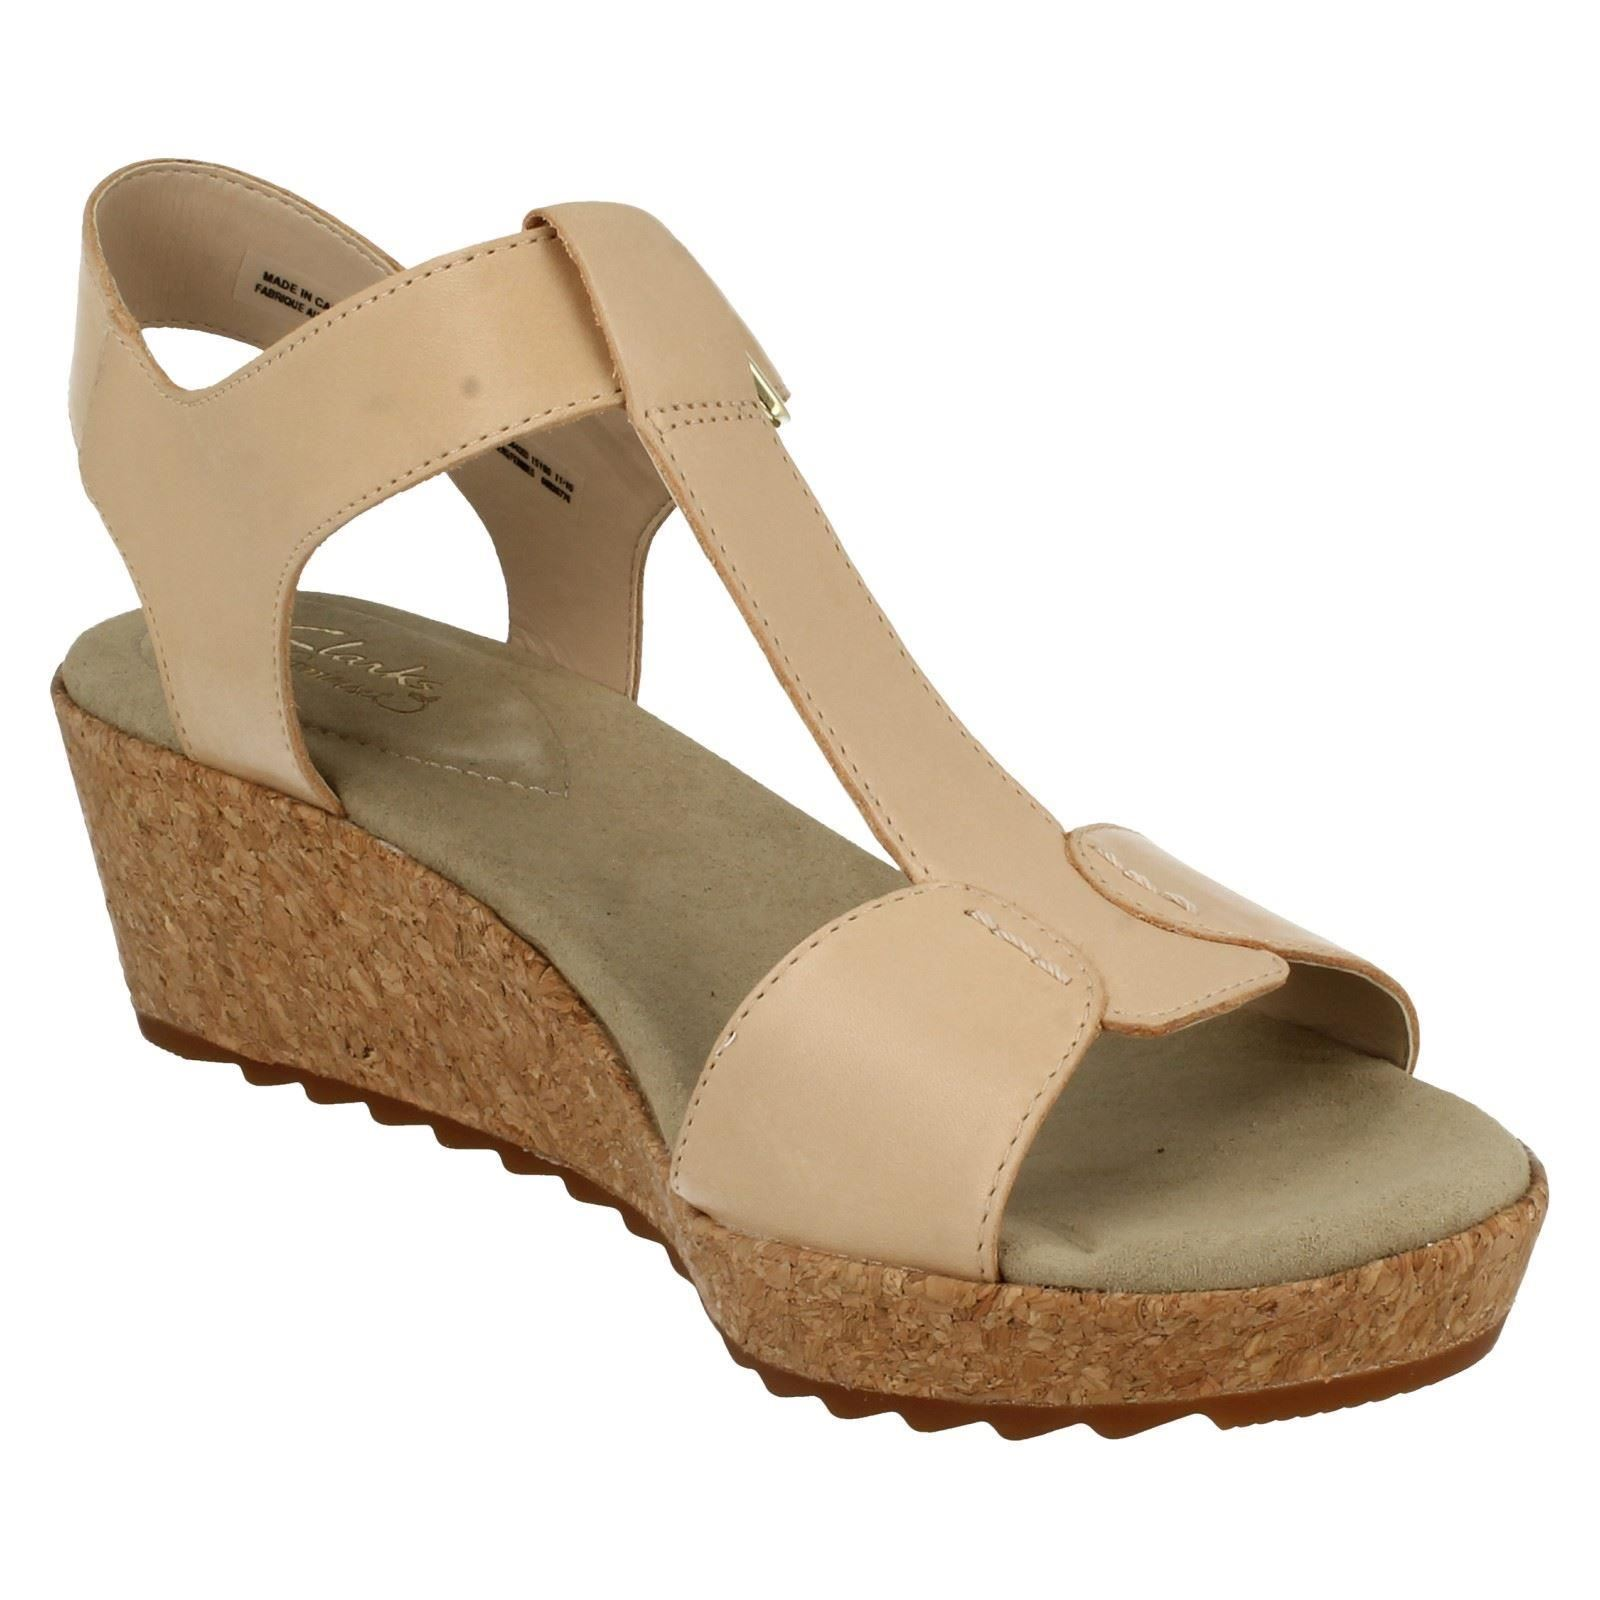 business casual sandals photo - 1